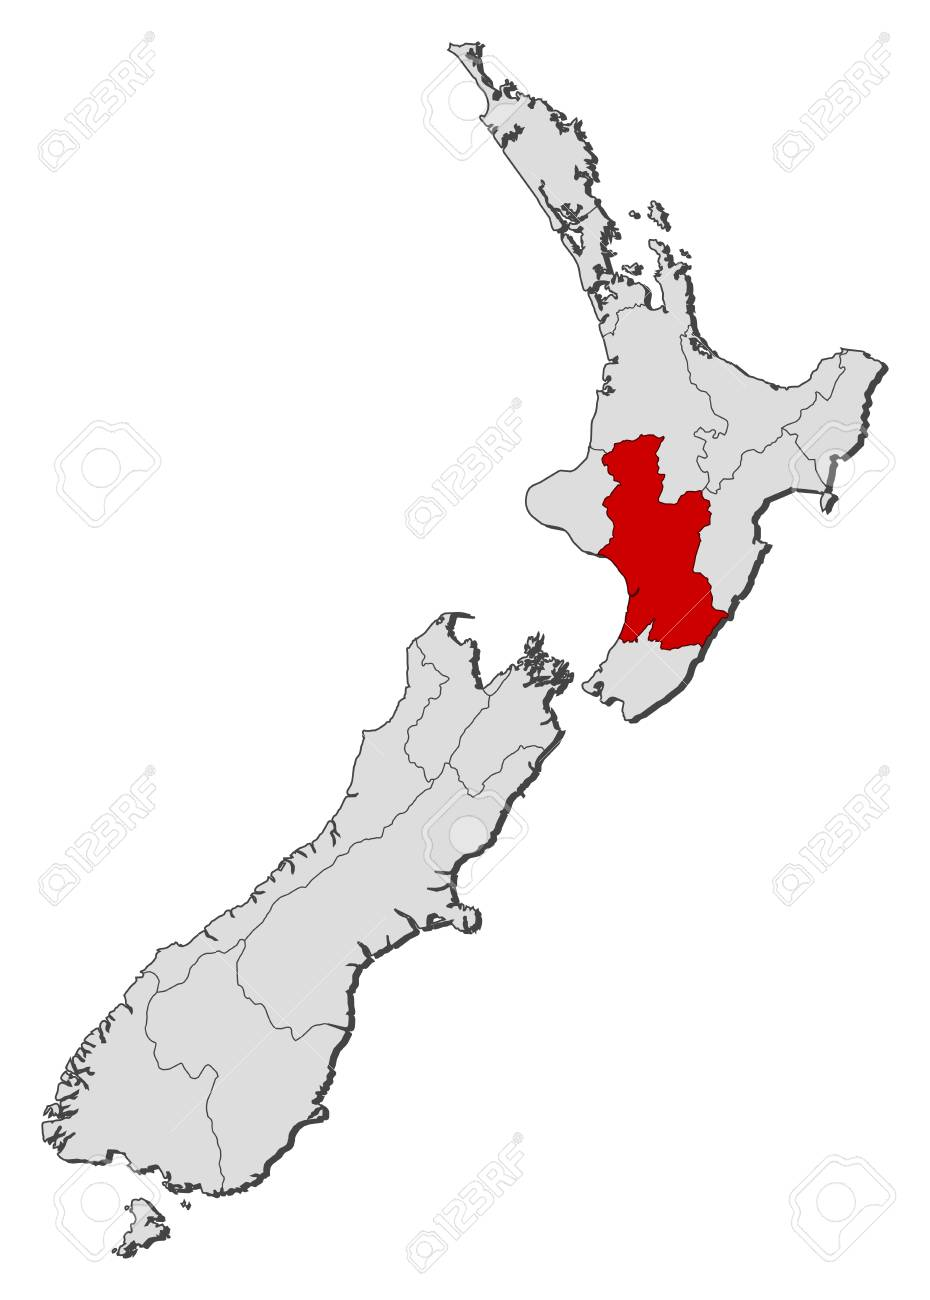 Political Map Of New Zealand.Political Map Of New Zealand With The Several Regions Where Hawke S